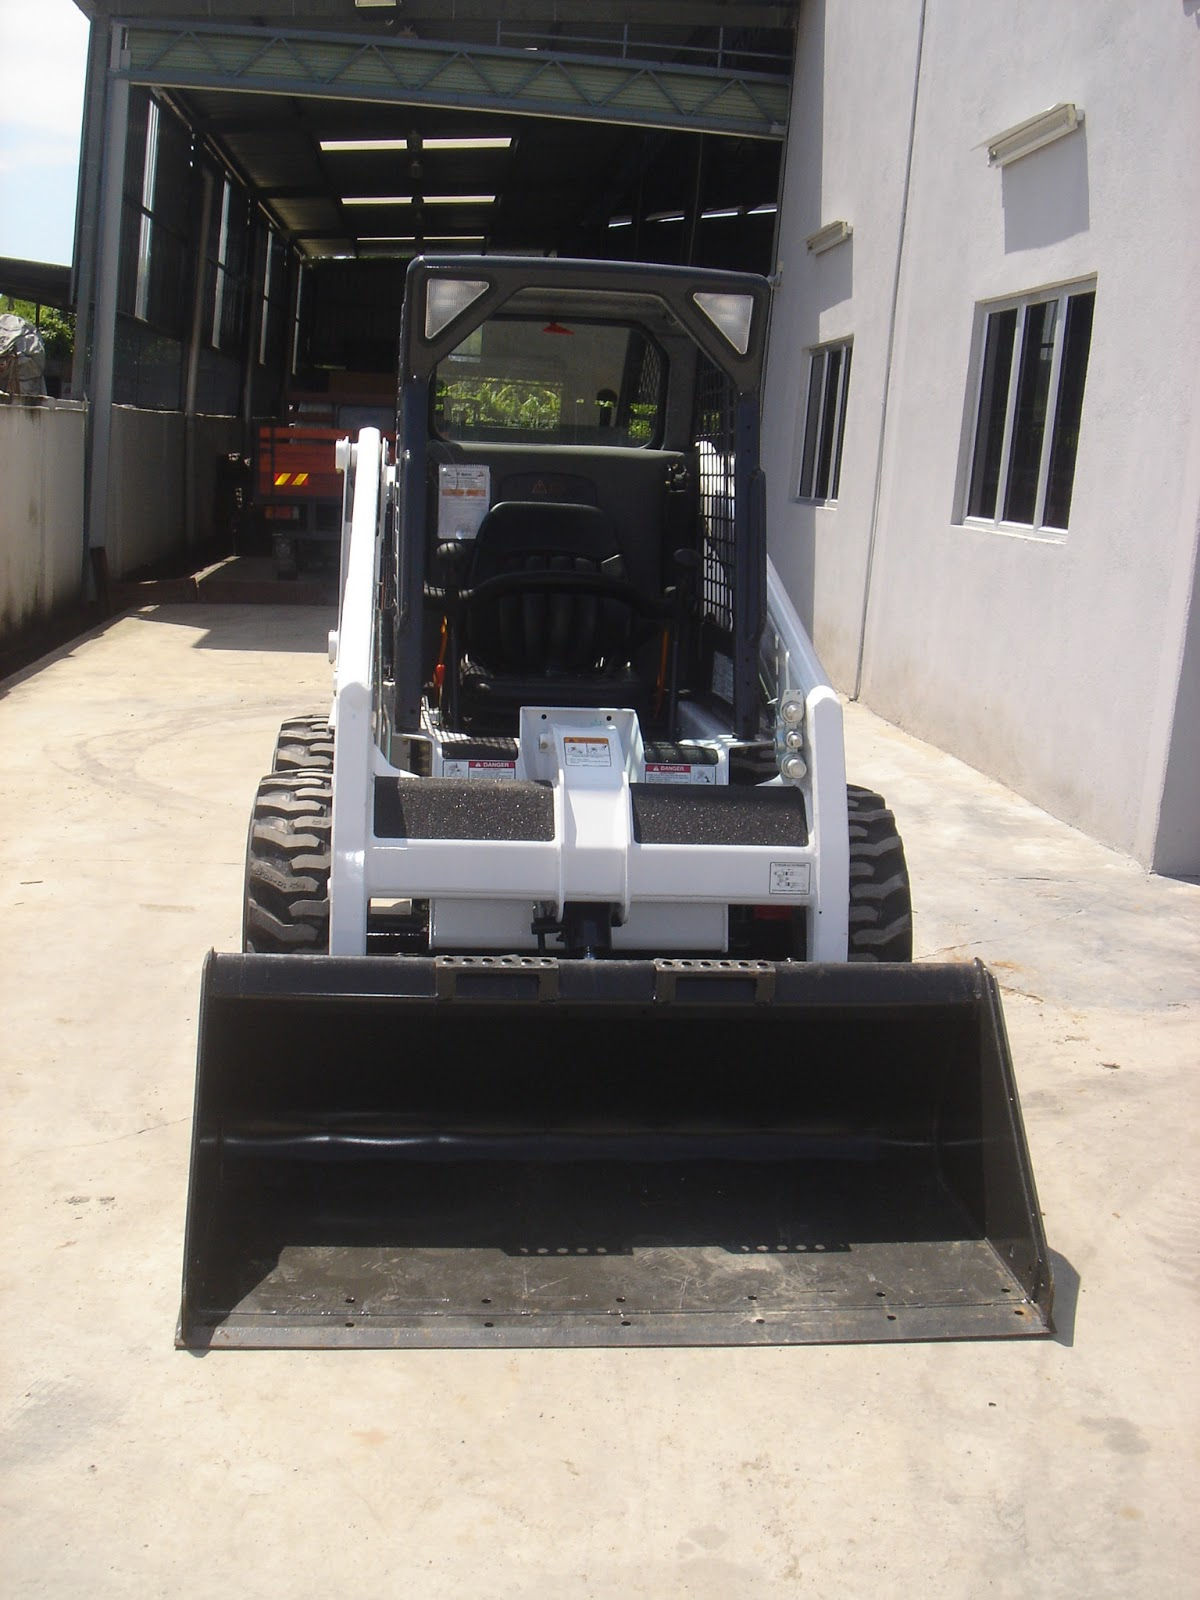 U O E  Equipment Sdn  Bhd : New Bobcat Skid Steer Loader